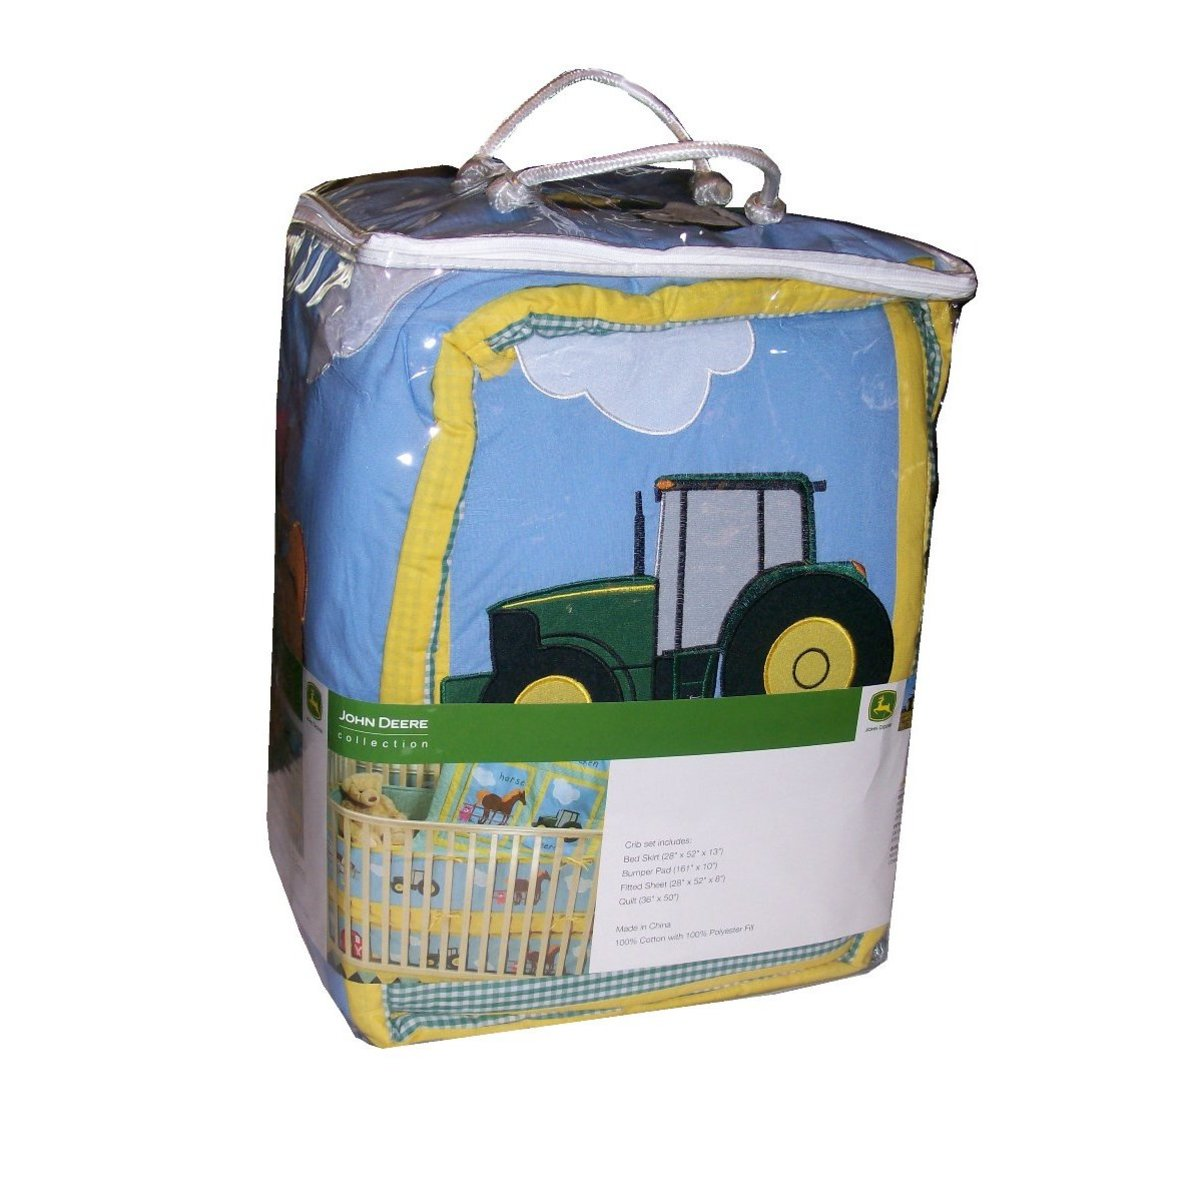 Decorate the baby's room with John Deere. This bedding set is colorful and nicely designed.